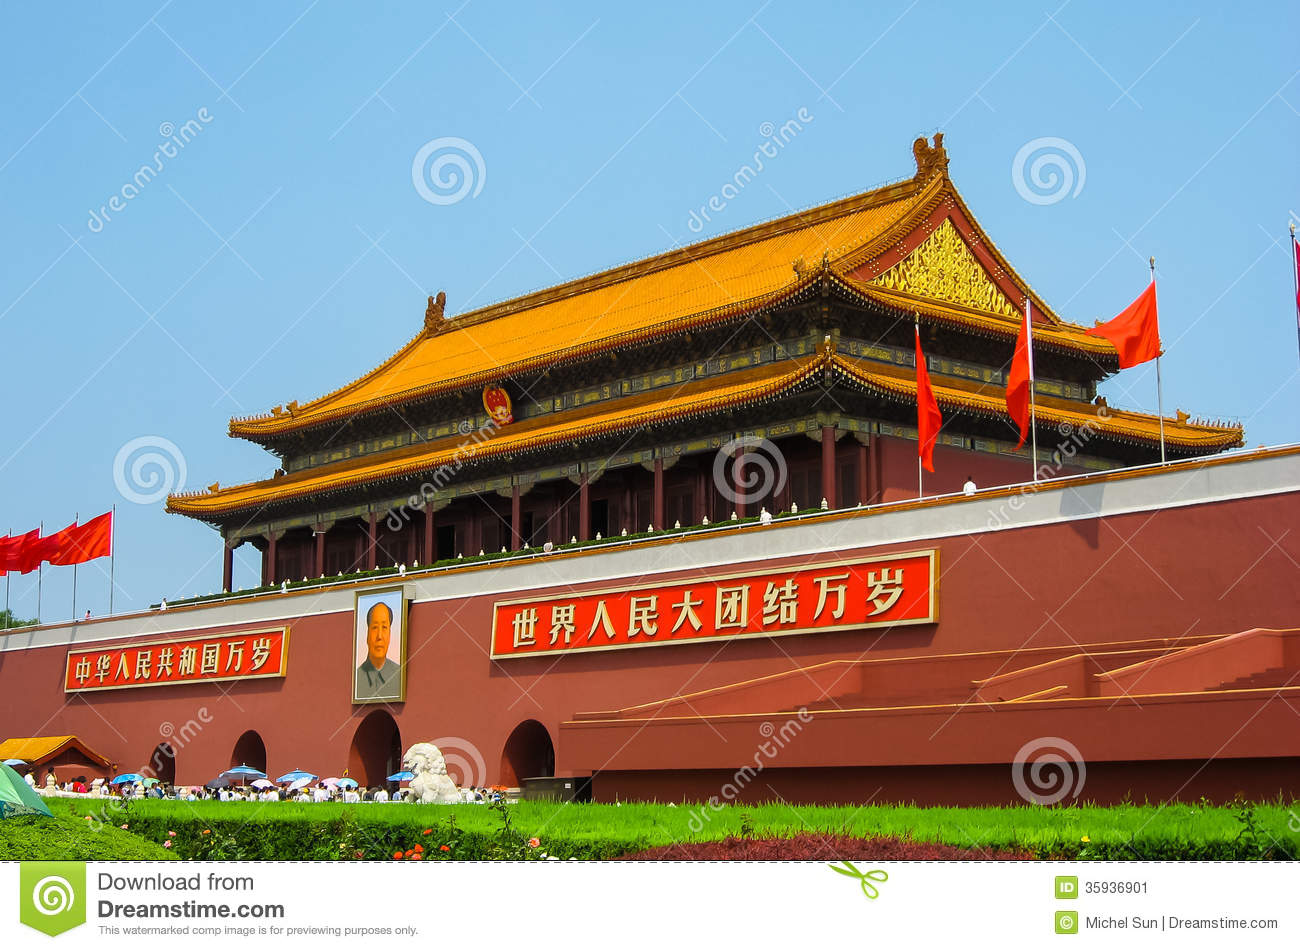 Tiananmen Square On A Busy Day Stock Image.